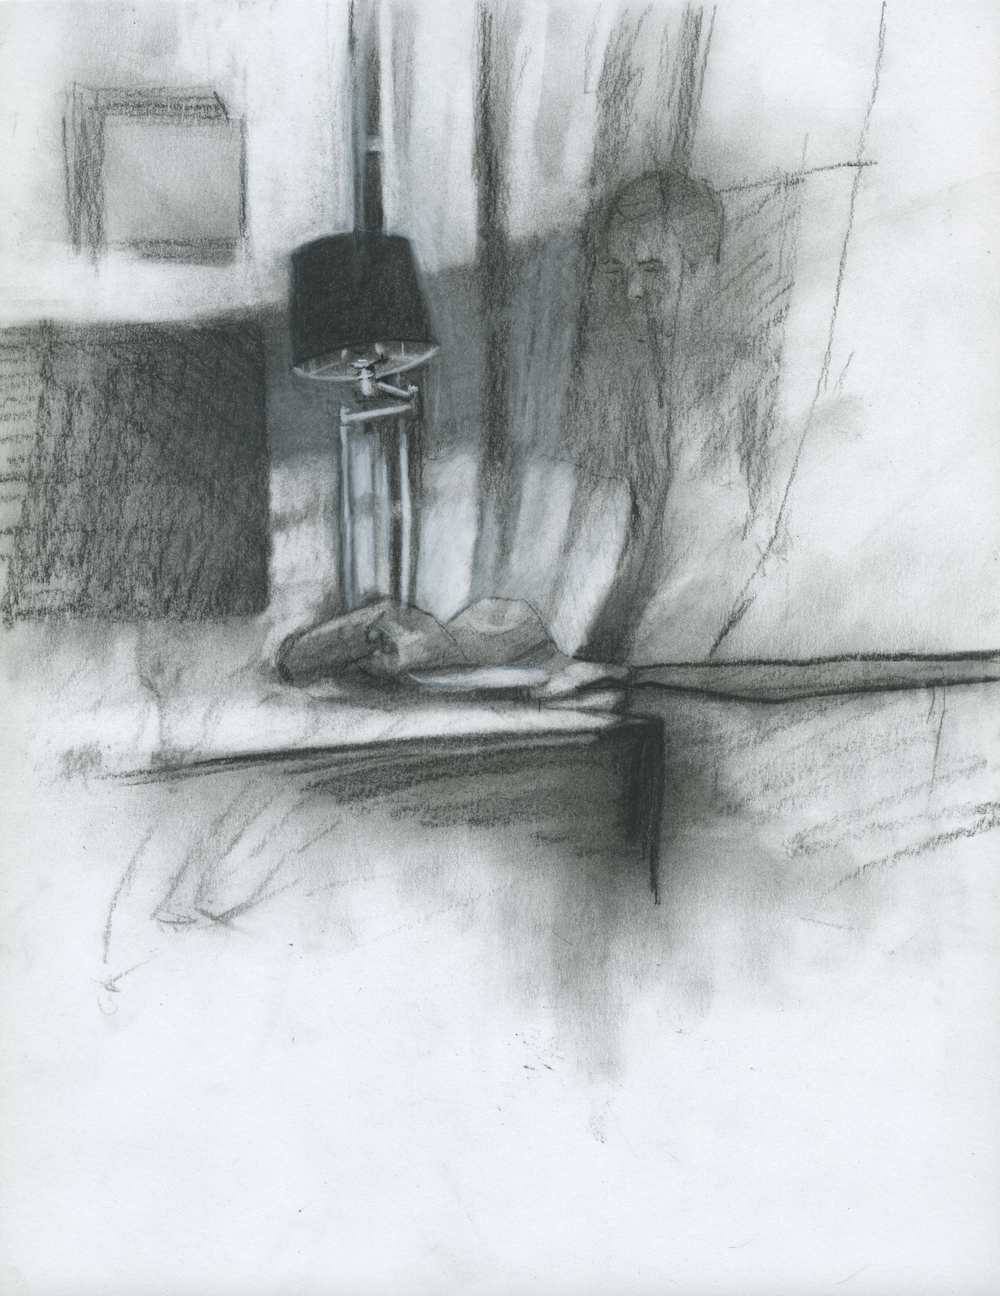 """On All Night, charcoal on paper, 11"""" x 8.5"""", 2014"""